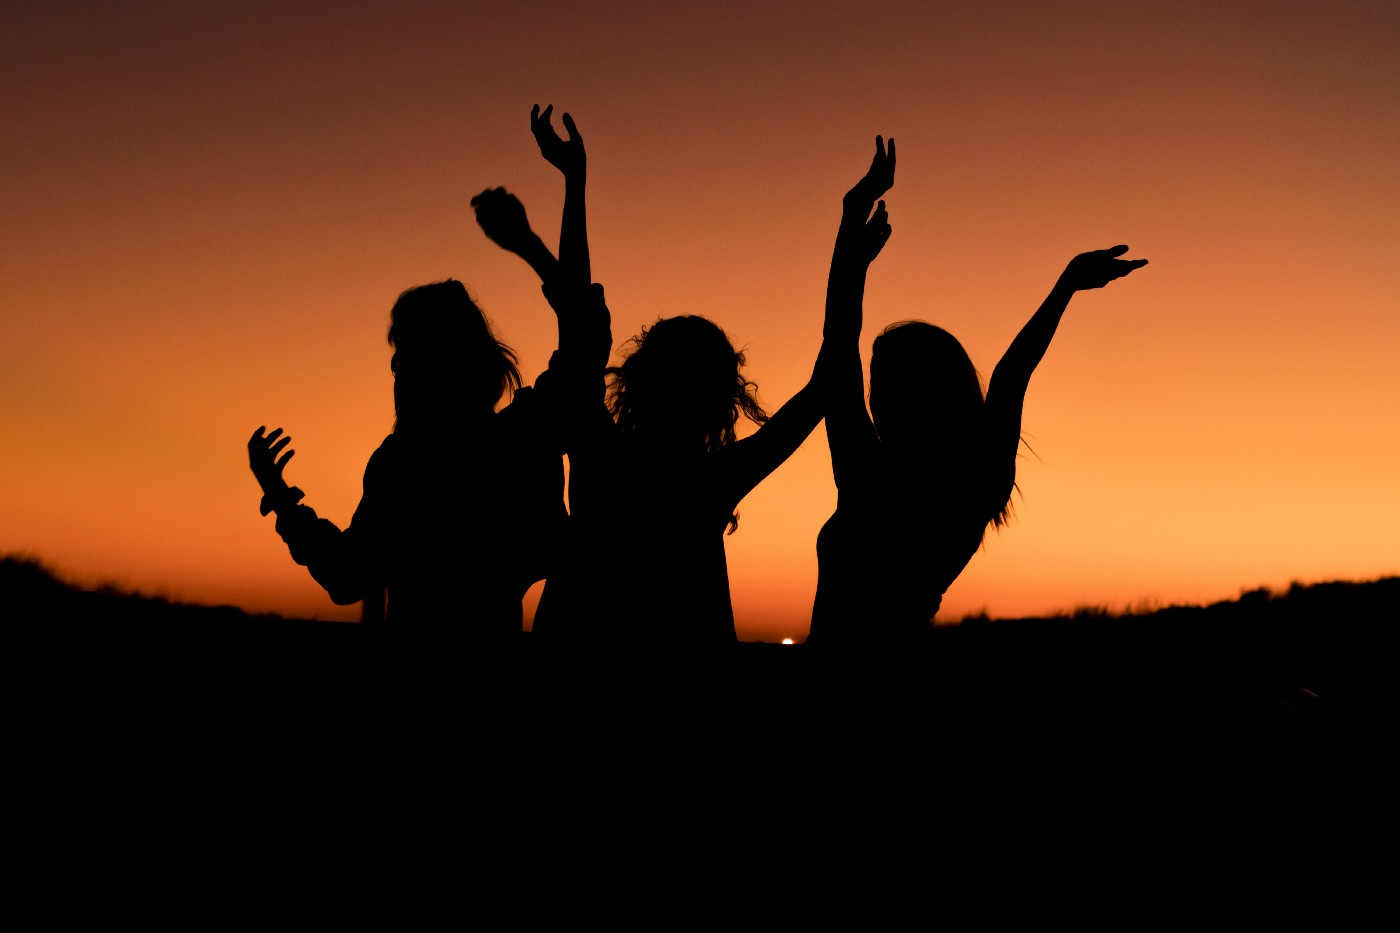 Silhouettes of three women covered in black shadow are standing outside in front of a sandy hill during a summer evening. They are waving their hands in the air in celebration in front of a beautiful pink and orange burst sunset. Win $5,000 per week writing fiction this summer. Vocal Media has launched SFS: The Summer Fiction Series. 8 weekly short-fiction writing challenges to jump-start our creativity, with $52,000 in prizes.